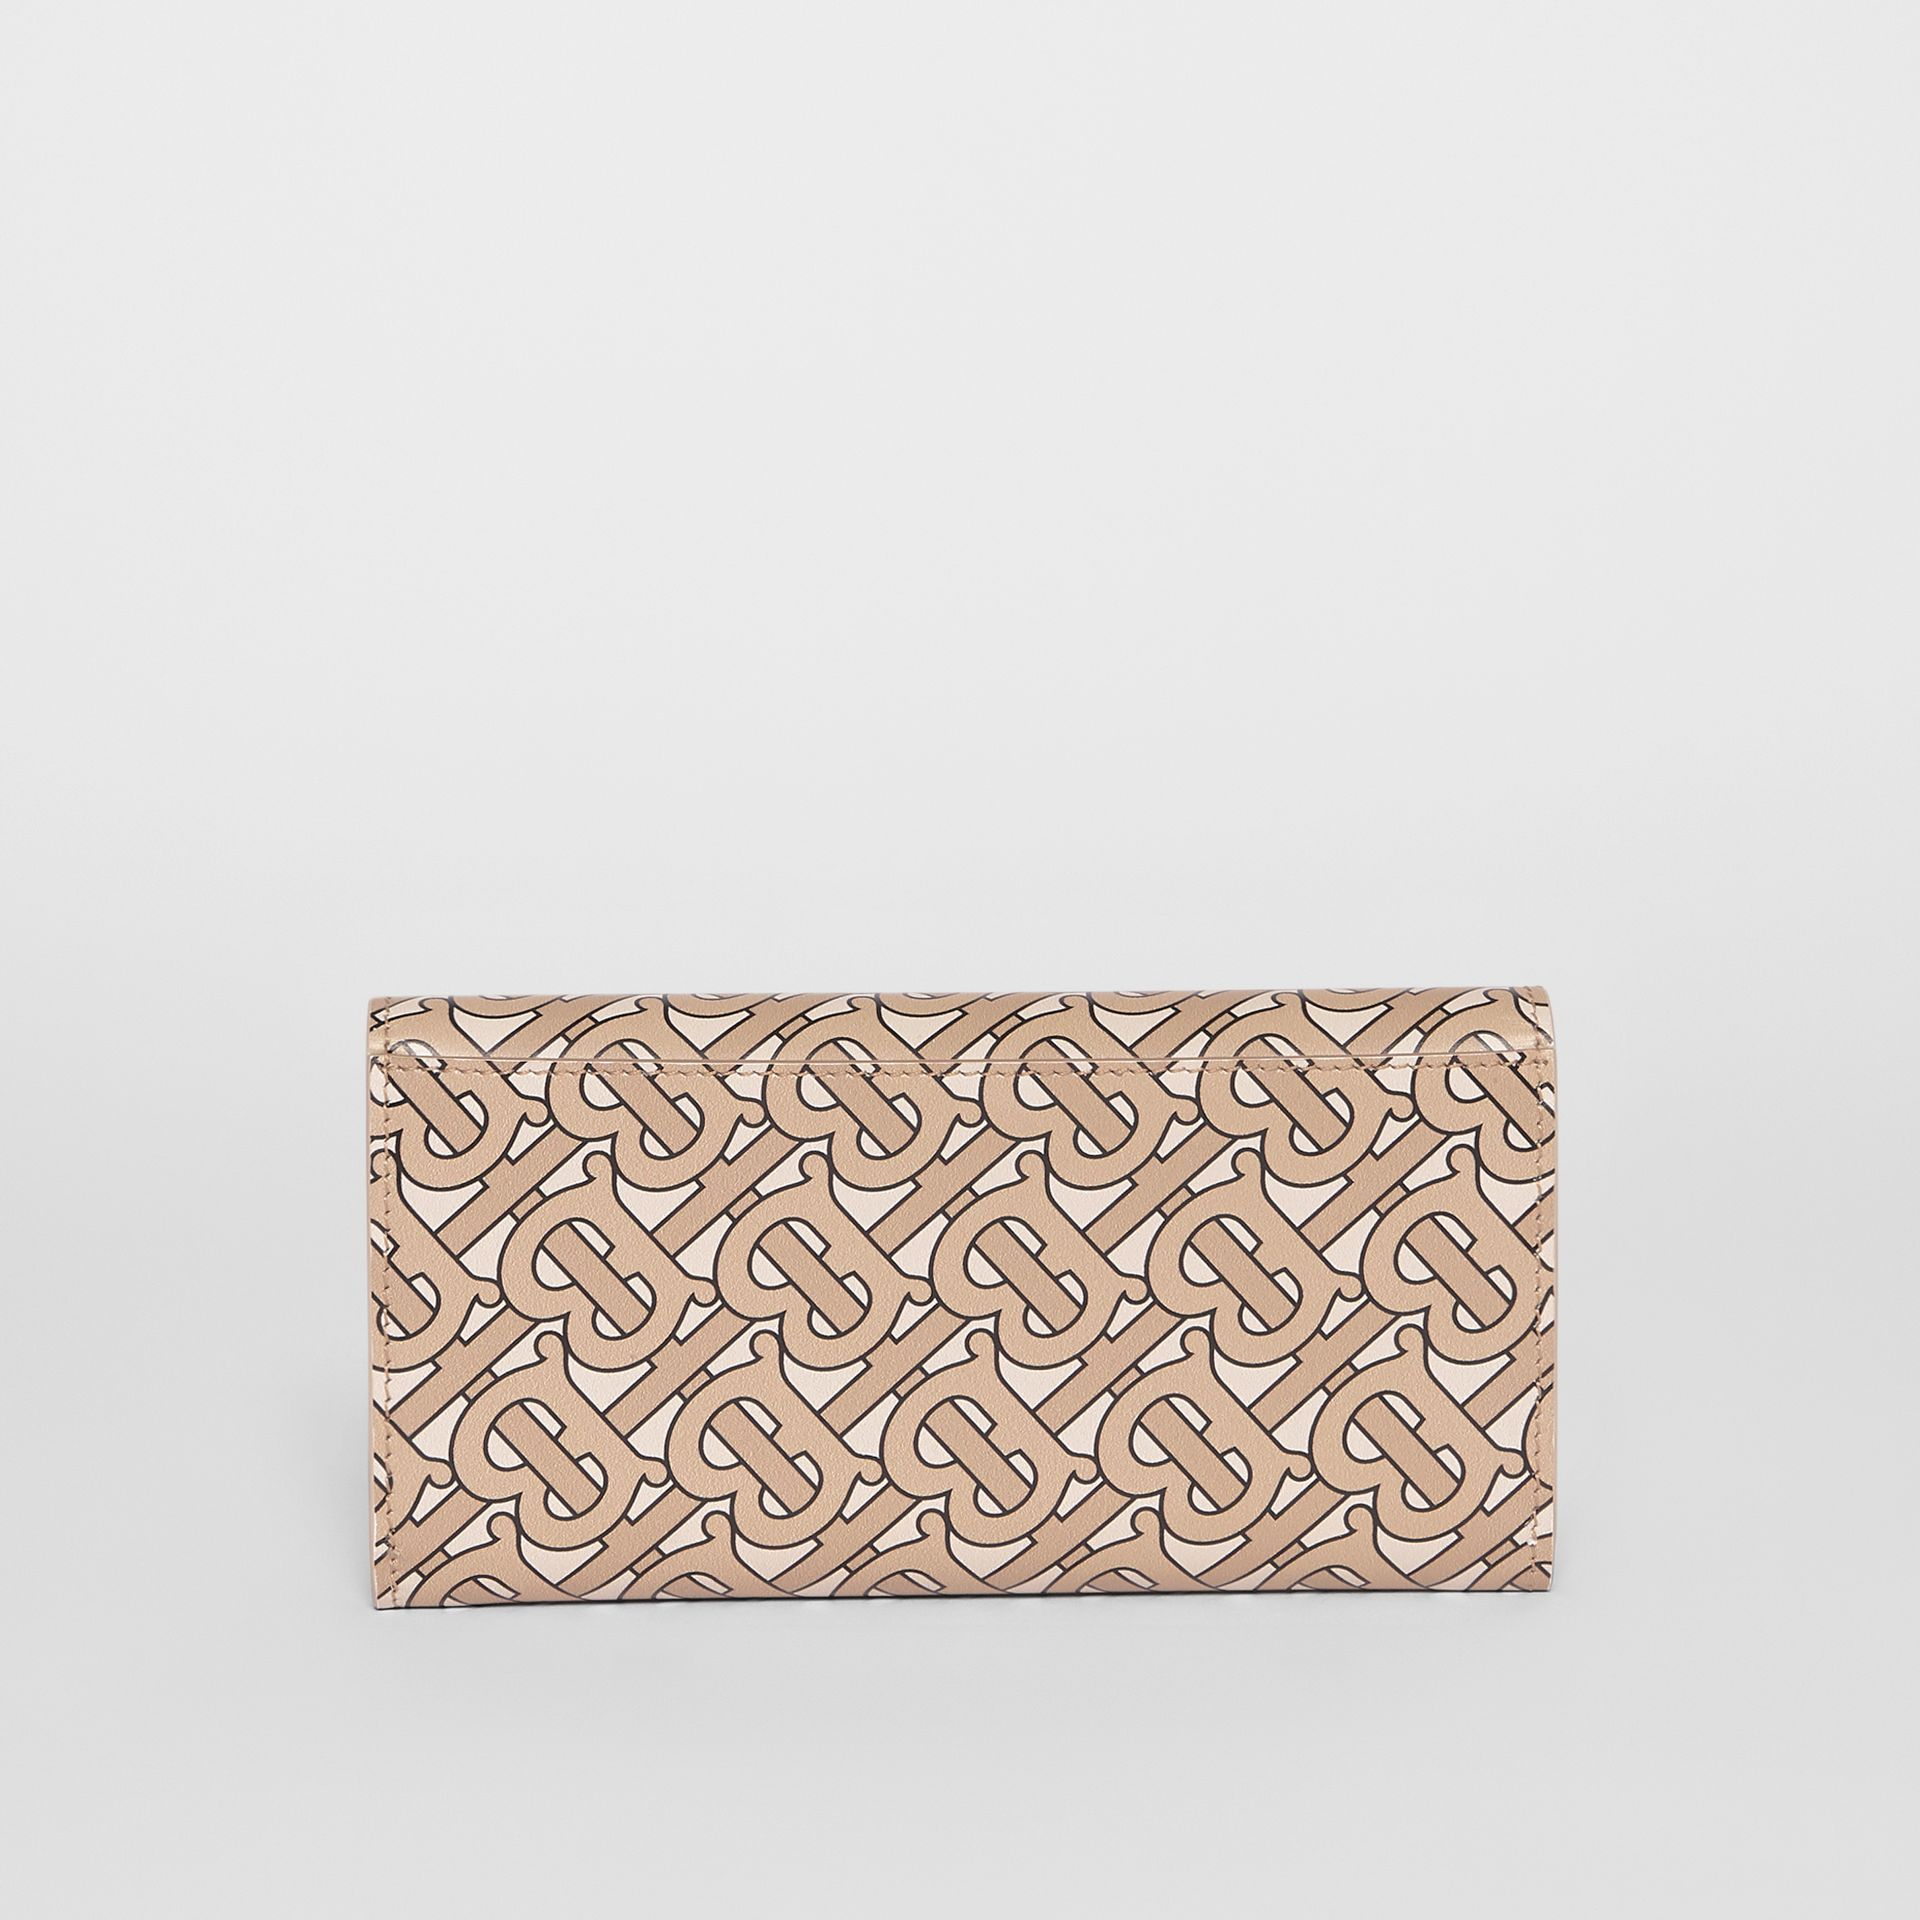 Monogram Print Leather Continental Wallet in Beige - Women | Burberry - gallery image 5